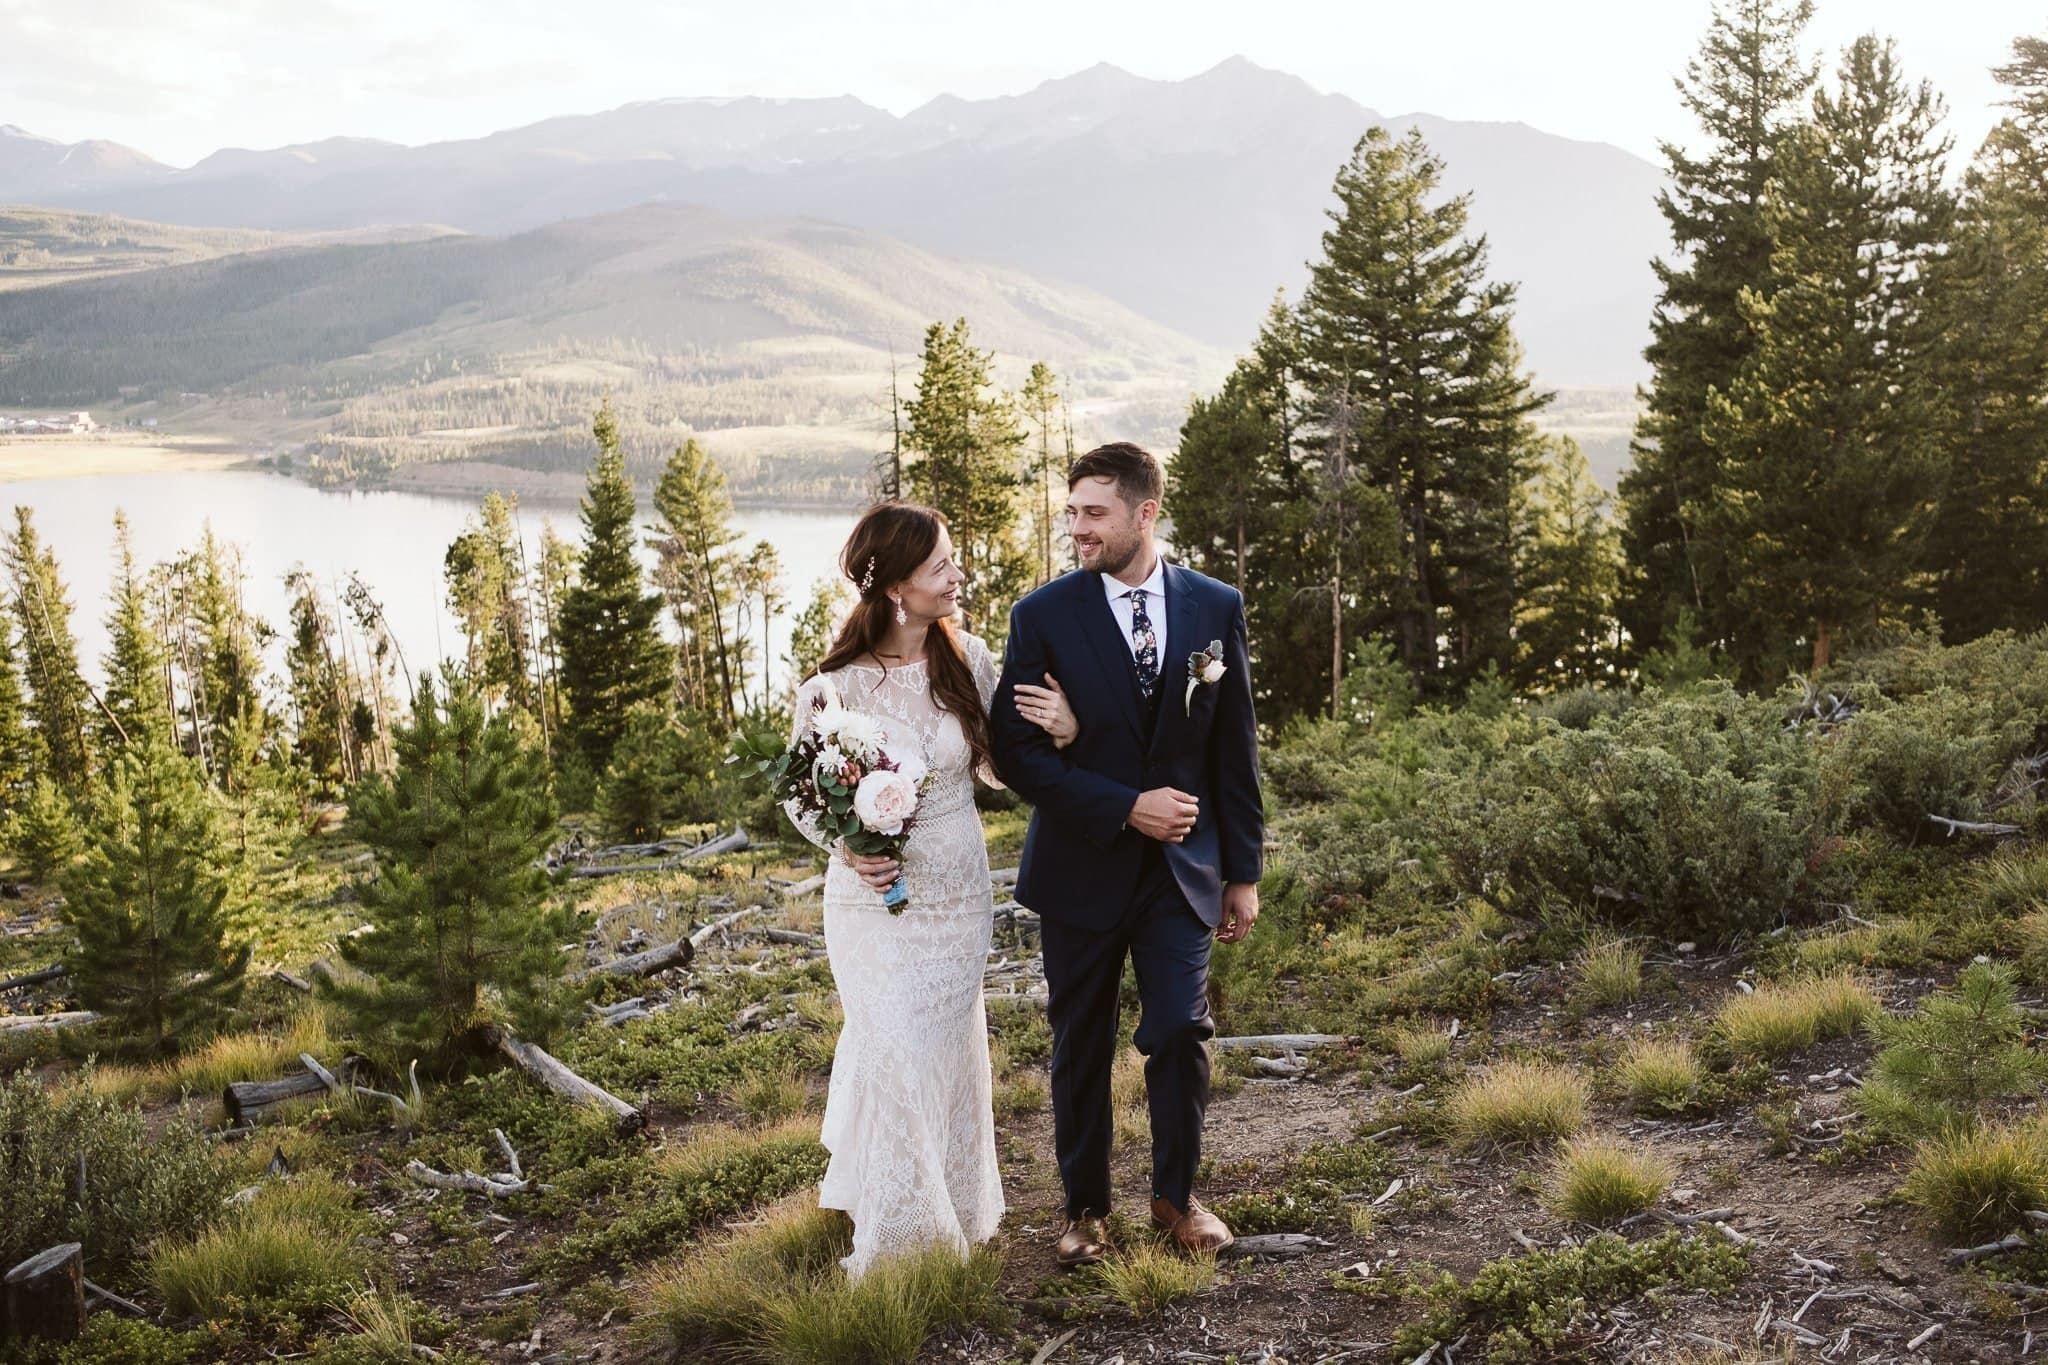 Bride and groom wedding portraits at Sapphire Point in Dillon, Colorado mountain wedding photos